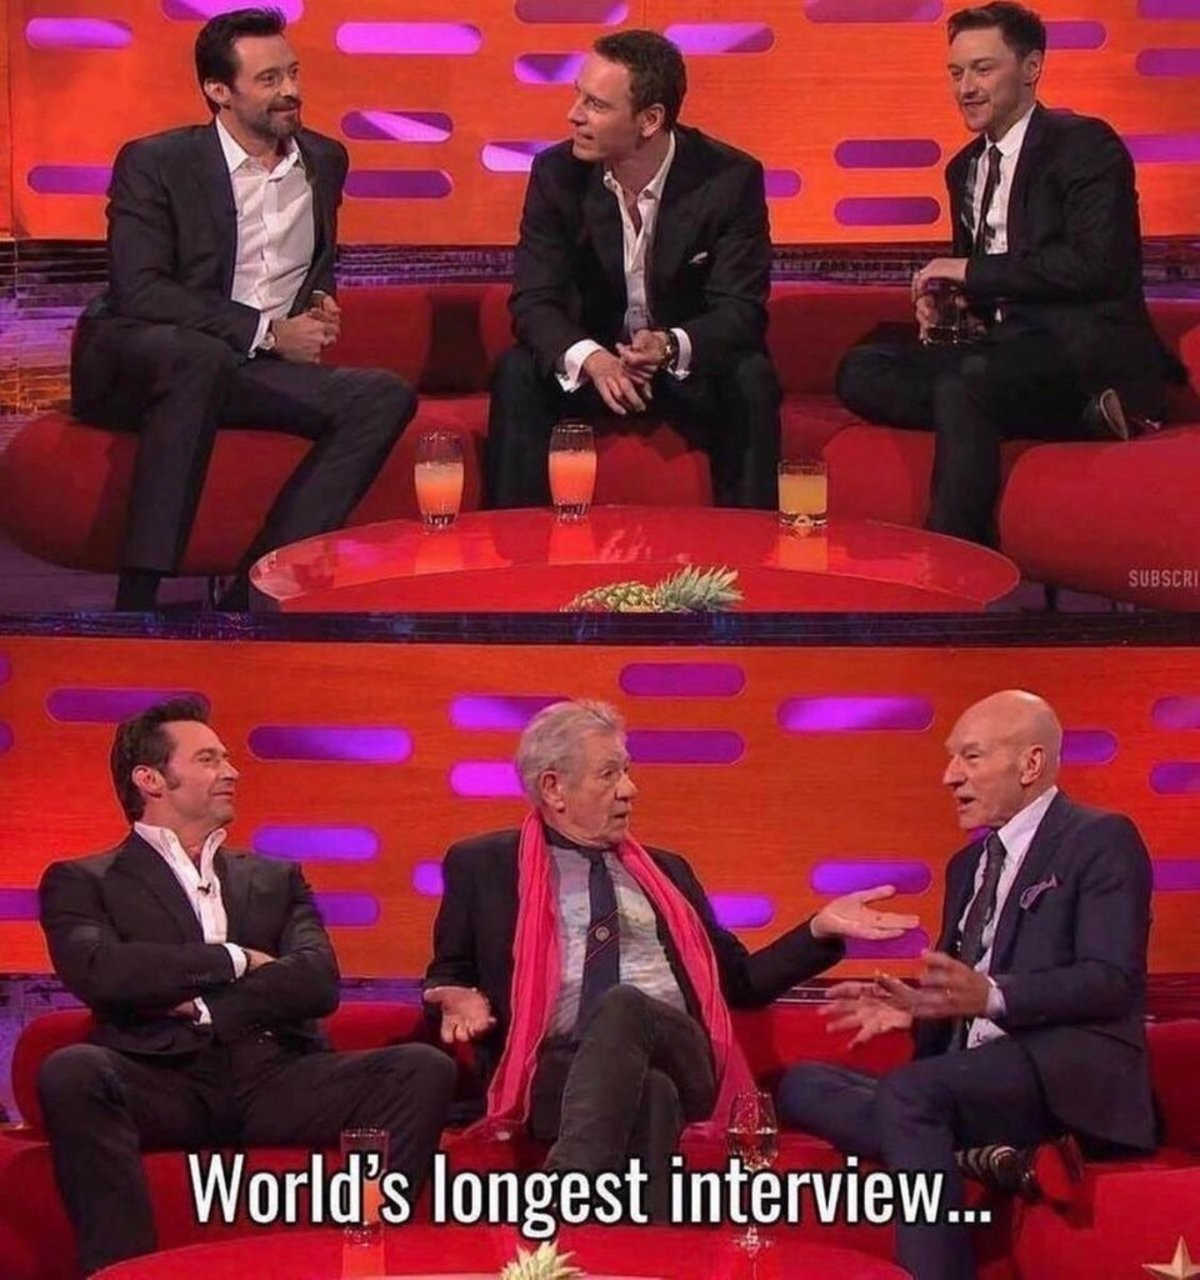 Must have been a ing good interview. join list: MarvelStuff (205 subs)Mention History join list:. Hugh just shaved during that interview, while everyone else aged... I guess his Regeneration powers apply to all cells.